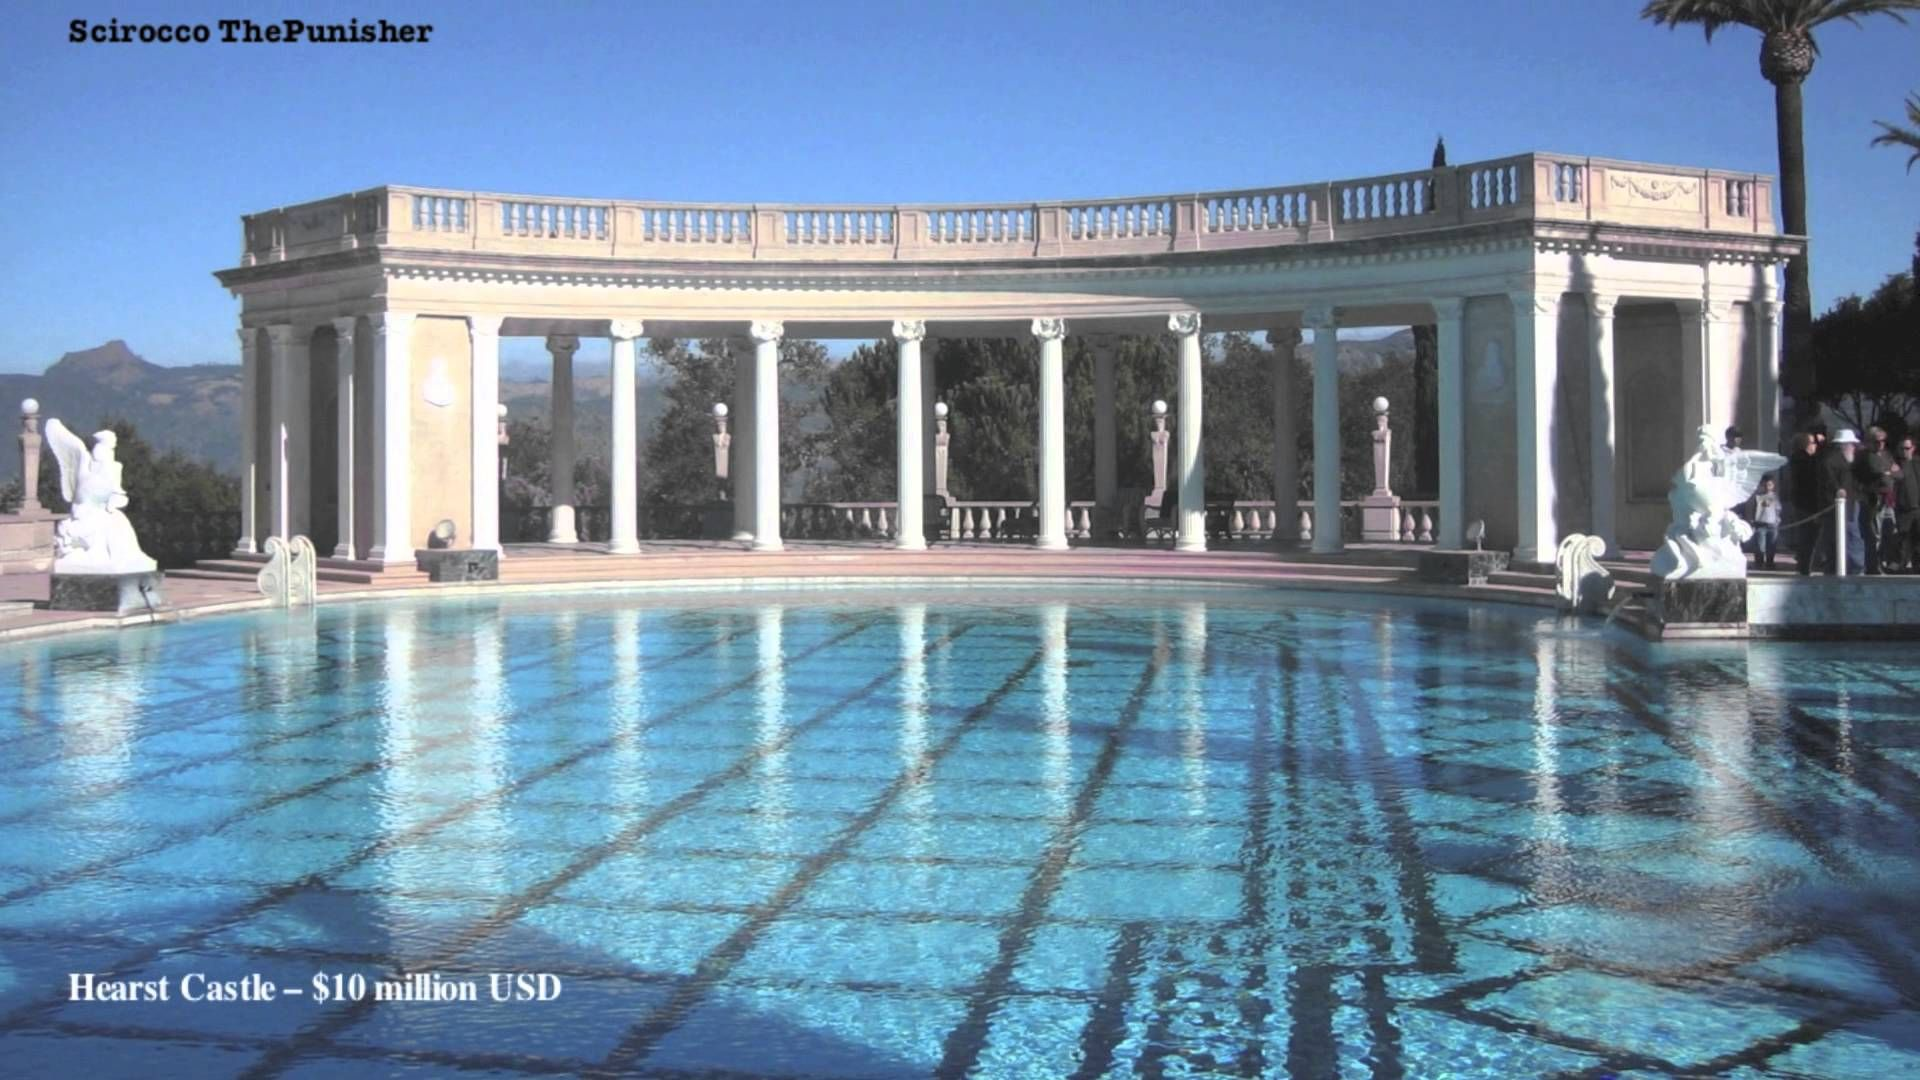 Top 10 Most Expensive Swimming Pools 2015 Hd American Castles